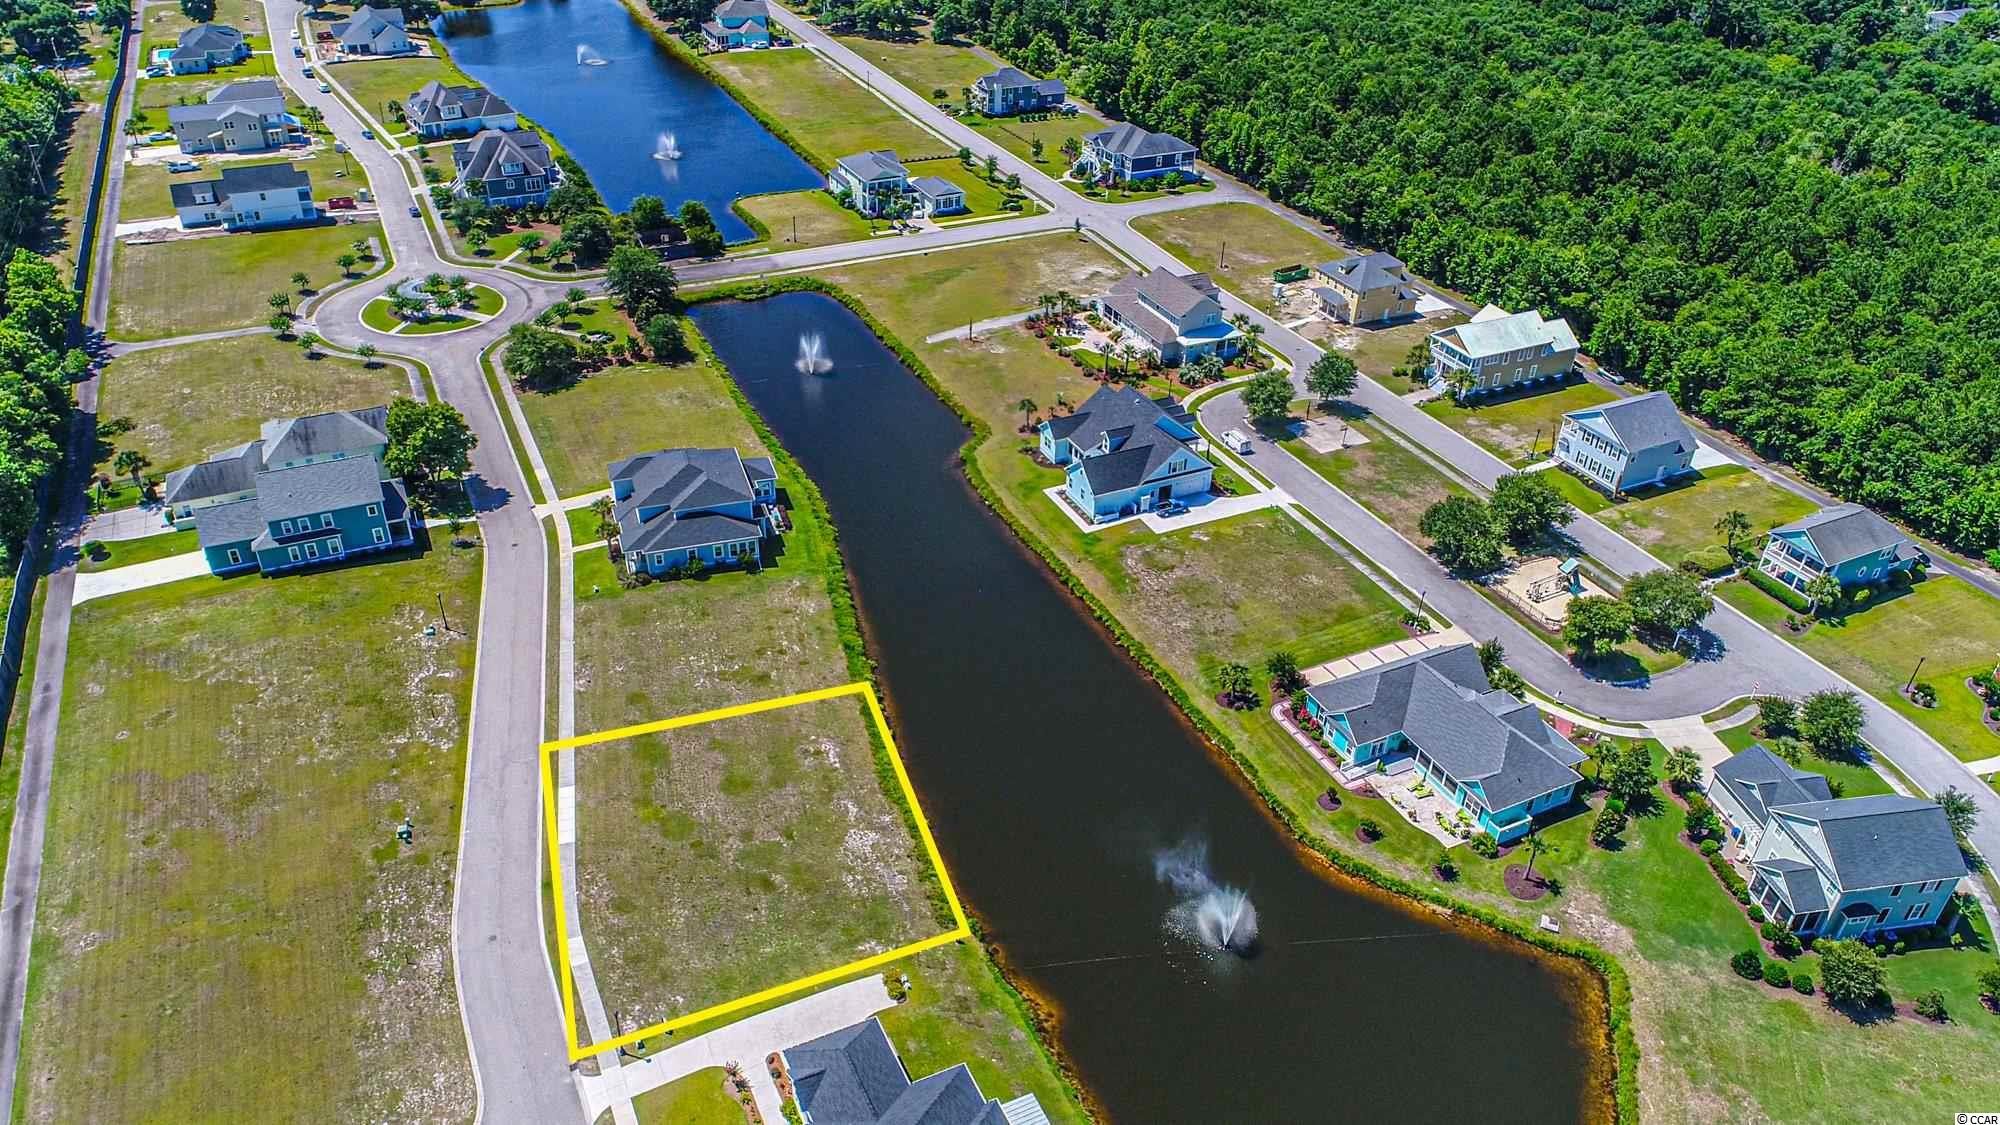 Can't miss opportunity to build your dream home in the gorgeous Charleston Landing.  This oversized lot is one of the few lots in Charleston Landing wide enough to accommodate a wider one-level home with a side entry garage.  129 feet on the road and 110 feet on the pond!  A must see in person to picture your home here.  Buy now, choose your own builder, and build when ready (no timeframe to build). Community amenities include: Marsh front Cabana, Swimming Pool, Gazebo, Pier, Walking Trails, Basketball Hoops, Playground, and much more.